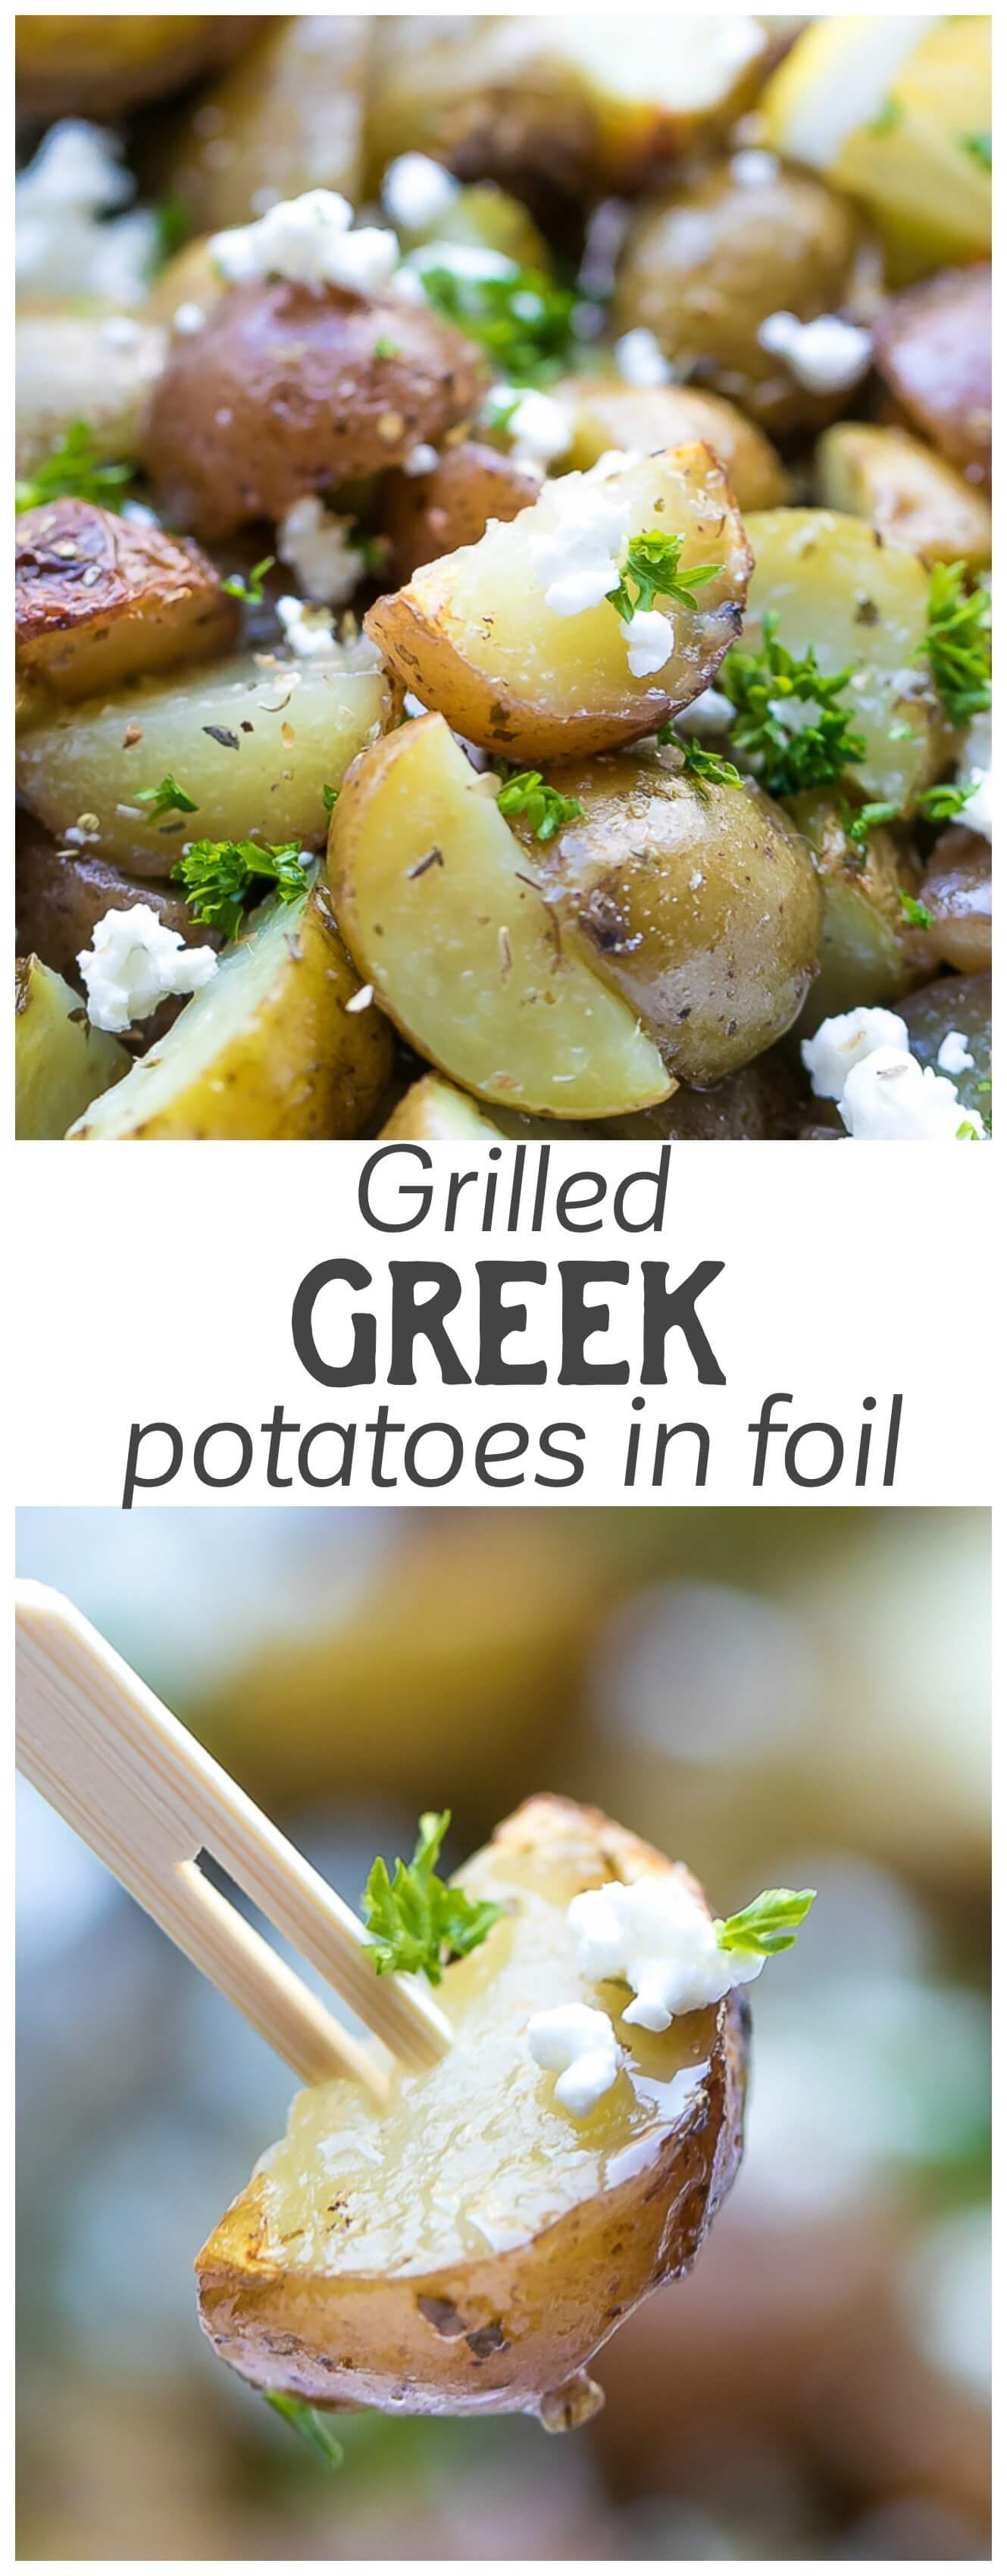 Grilled greek potatoes in foil recipe greek potatoes feta and grilled greek potatoes in foil greek food recipeseasy forumfinder Gallery